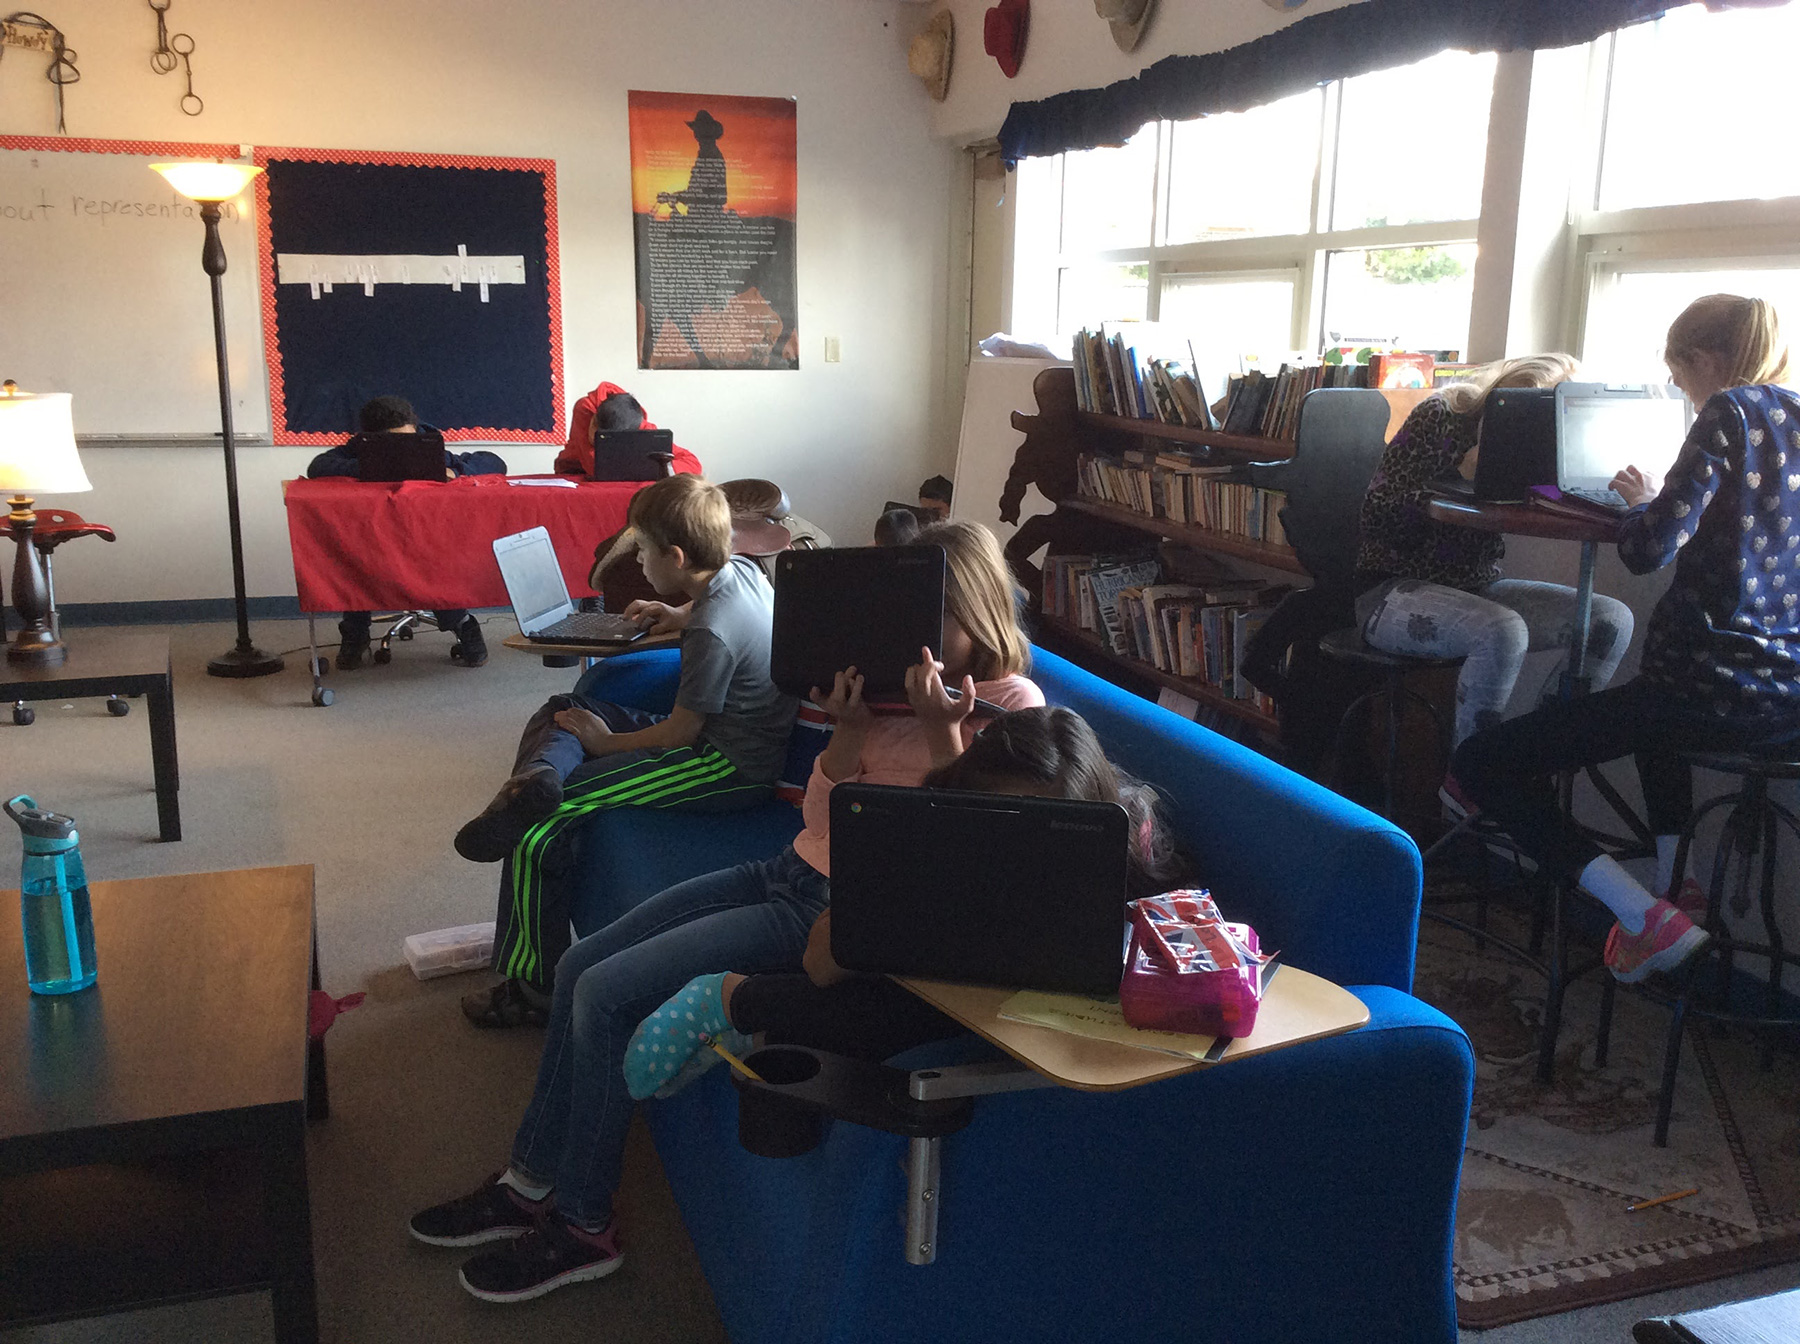 Top 3 Reasons to Use Flexible Seating in Classrooms